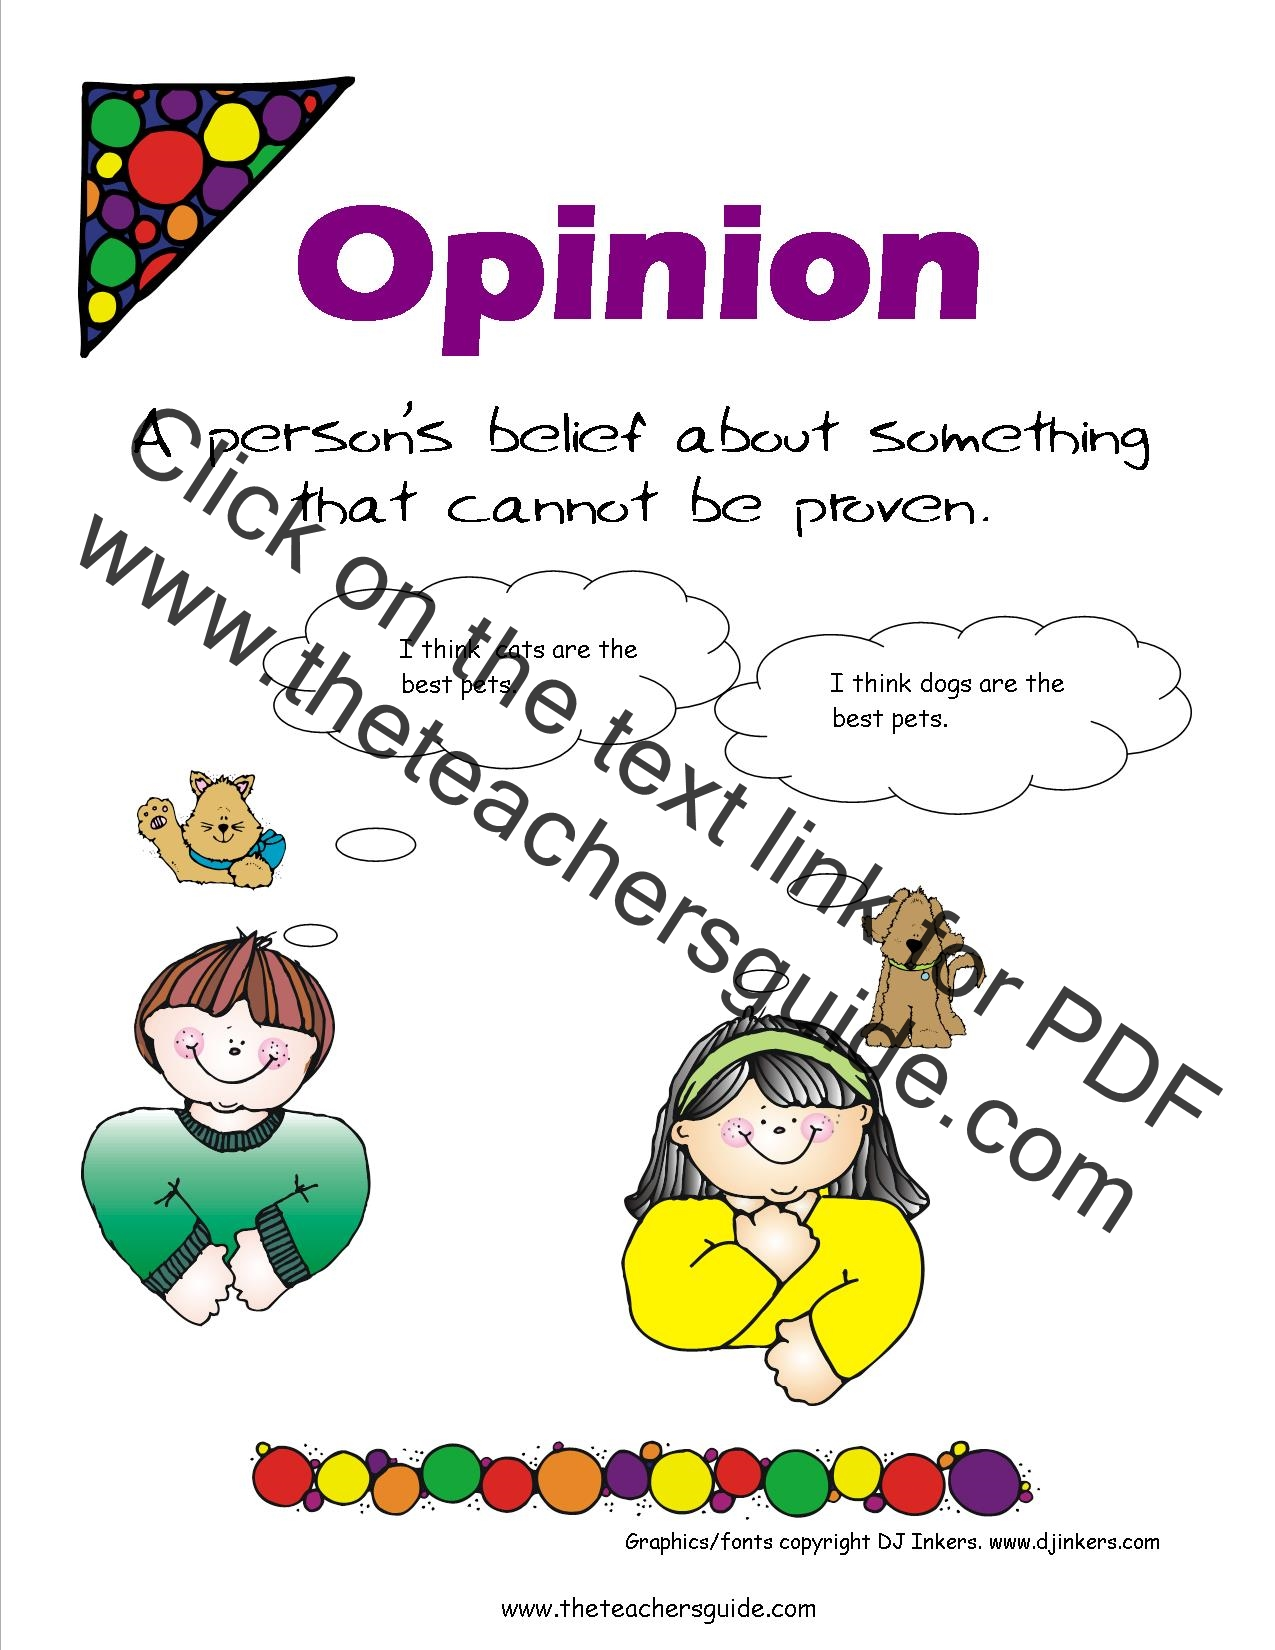 Opinion Writing Lesson Plans, Themes, Printouts, Crafts